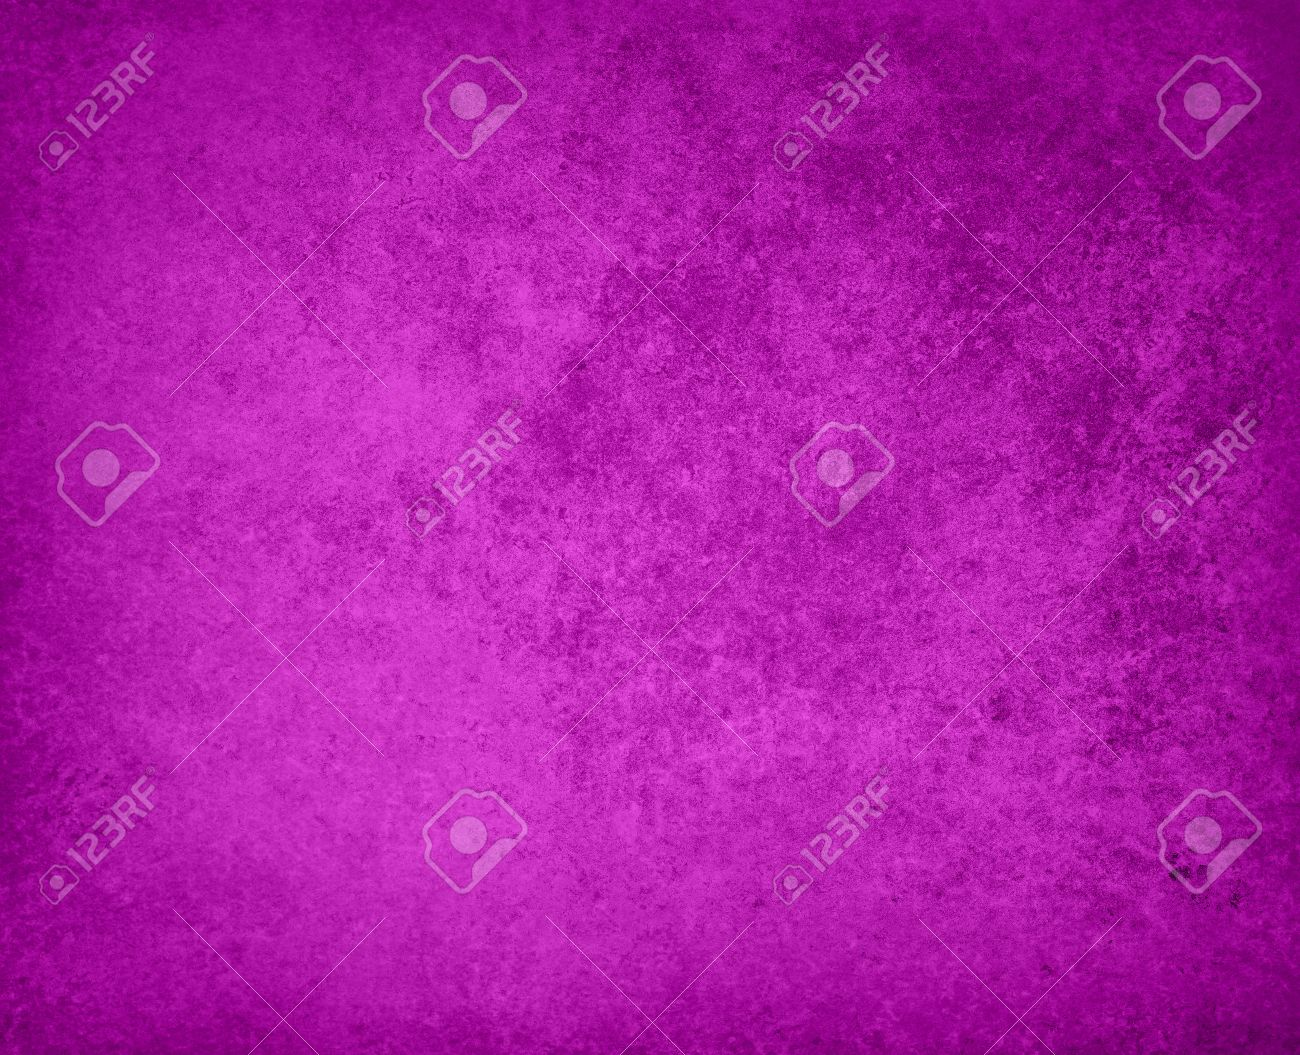 abstract pink background pink faded stain colors with sponge vintage grunge background texture, distressed rough smeary paint on wall, art canvas or board for brochure ad or website template Stock Photo - 24752933